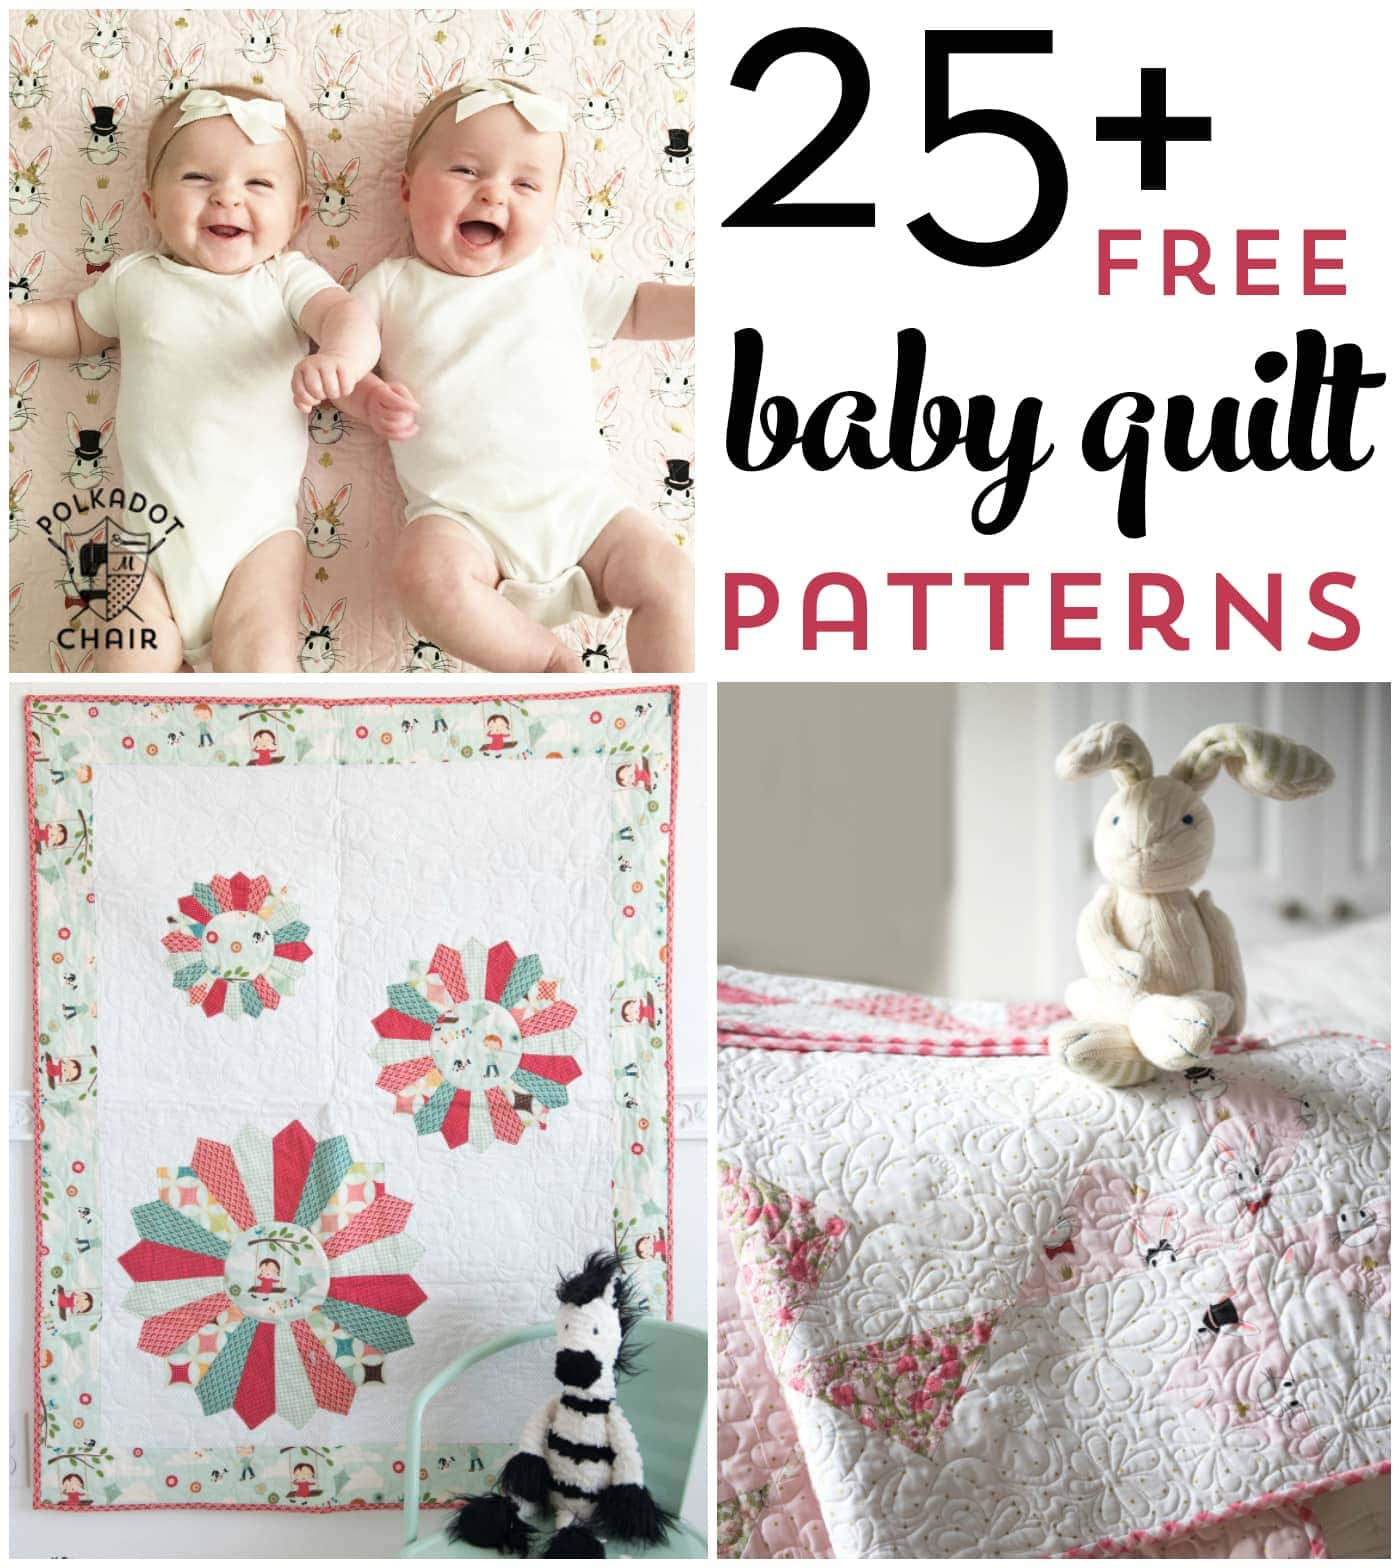 25+ Baby Quilt Patterns | The Polka Dot Chair